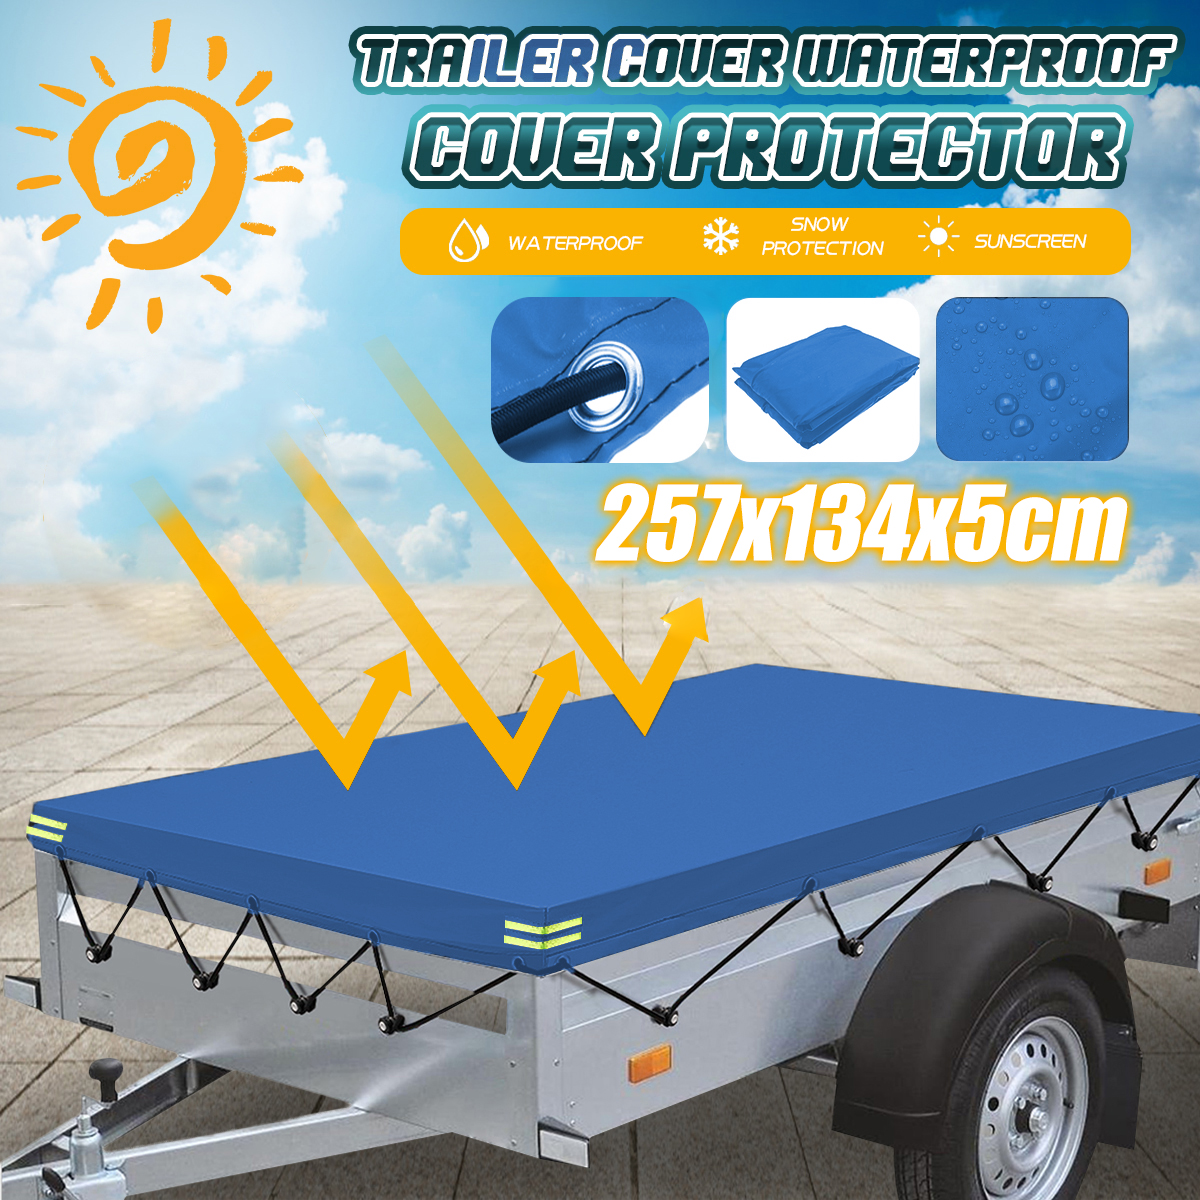 Multilayered Tarpaulin in Many Sizes and Thicknesses 15 Mil Heavy Duty Tarps 12 x 14 Blue Waterproof Ground Tent Trailer Cover